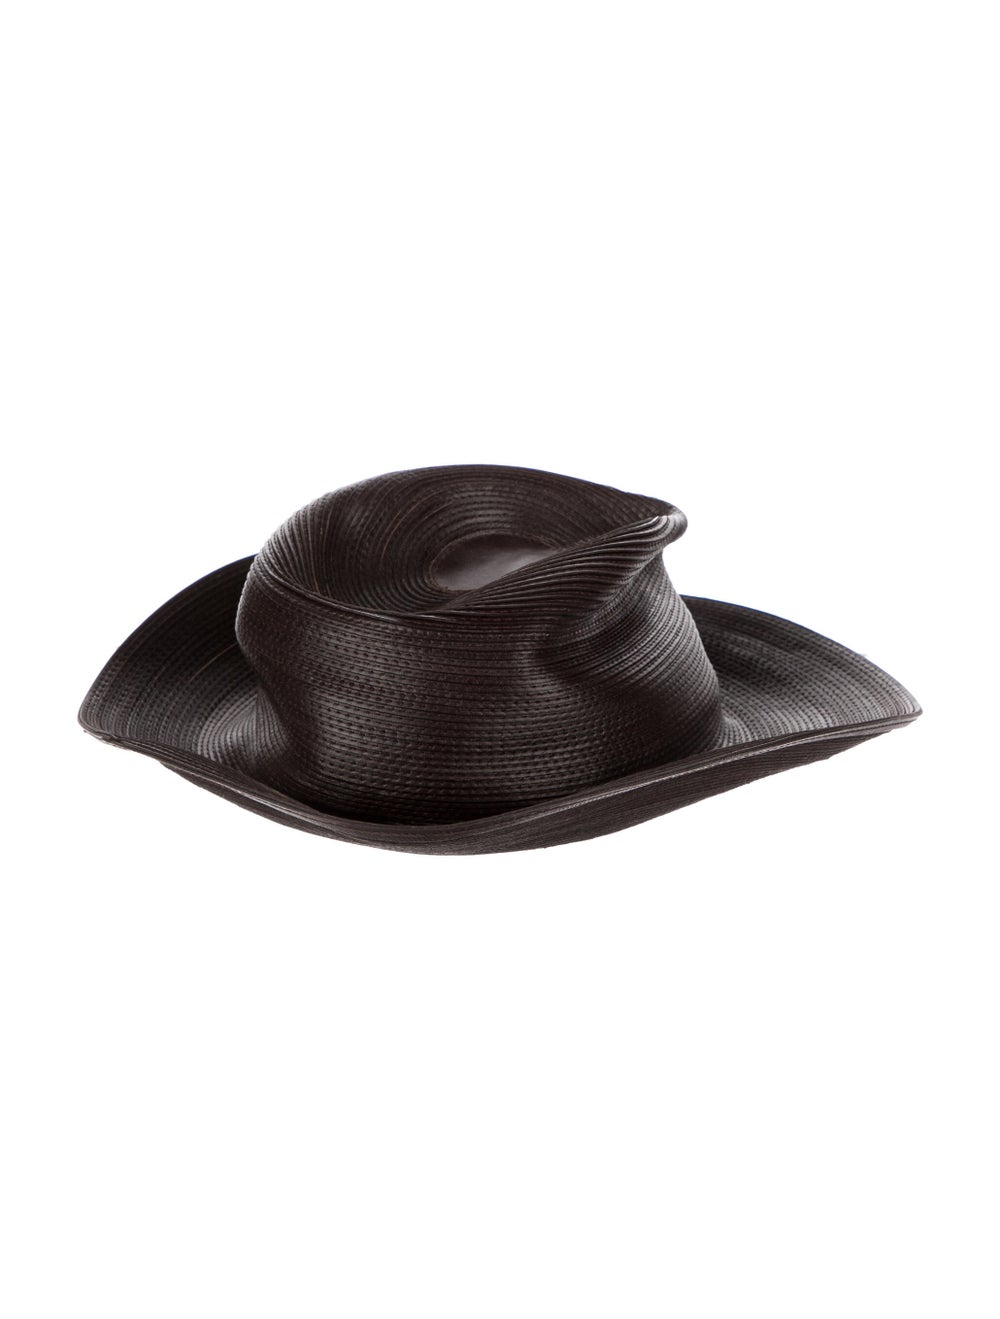 Patricia Underwood Leather Hat Brown - image 2